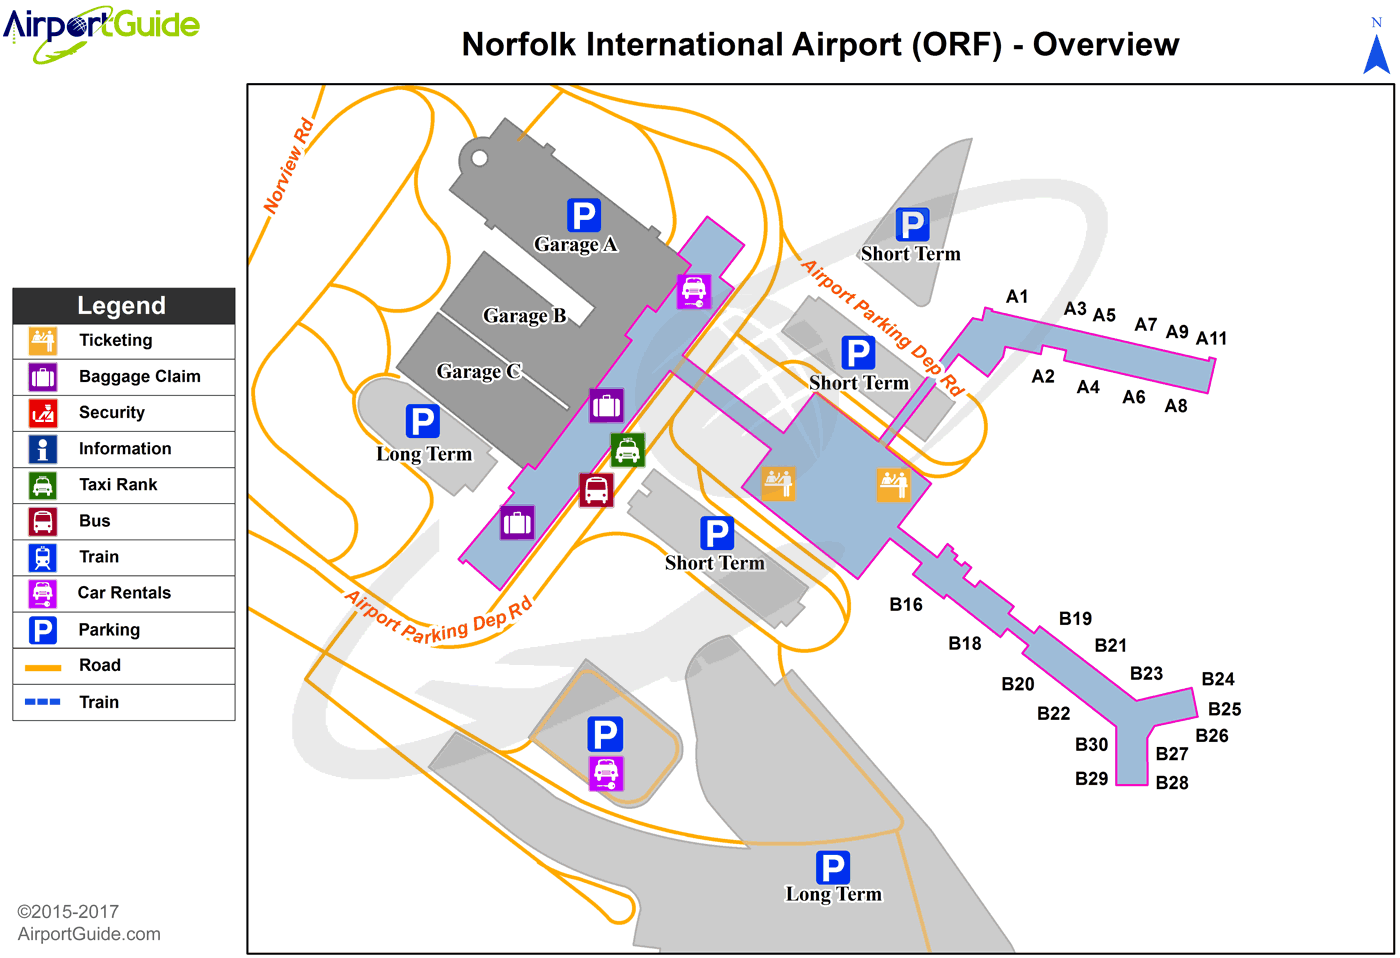 Norfolk - Norfolk International (ORF) Airport Terminal Map - Overview